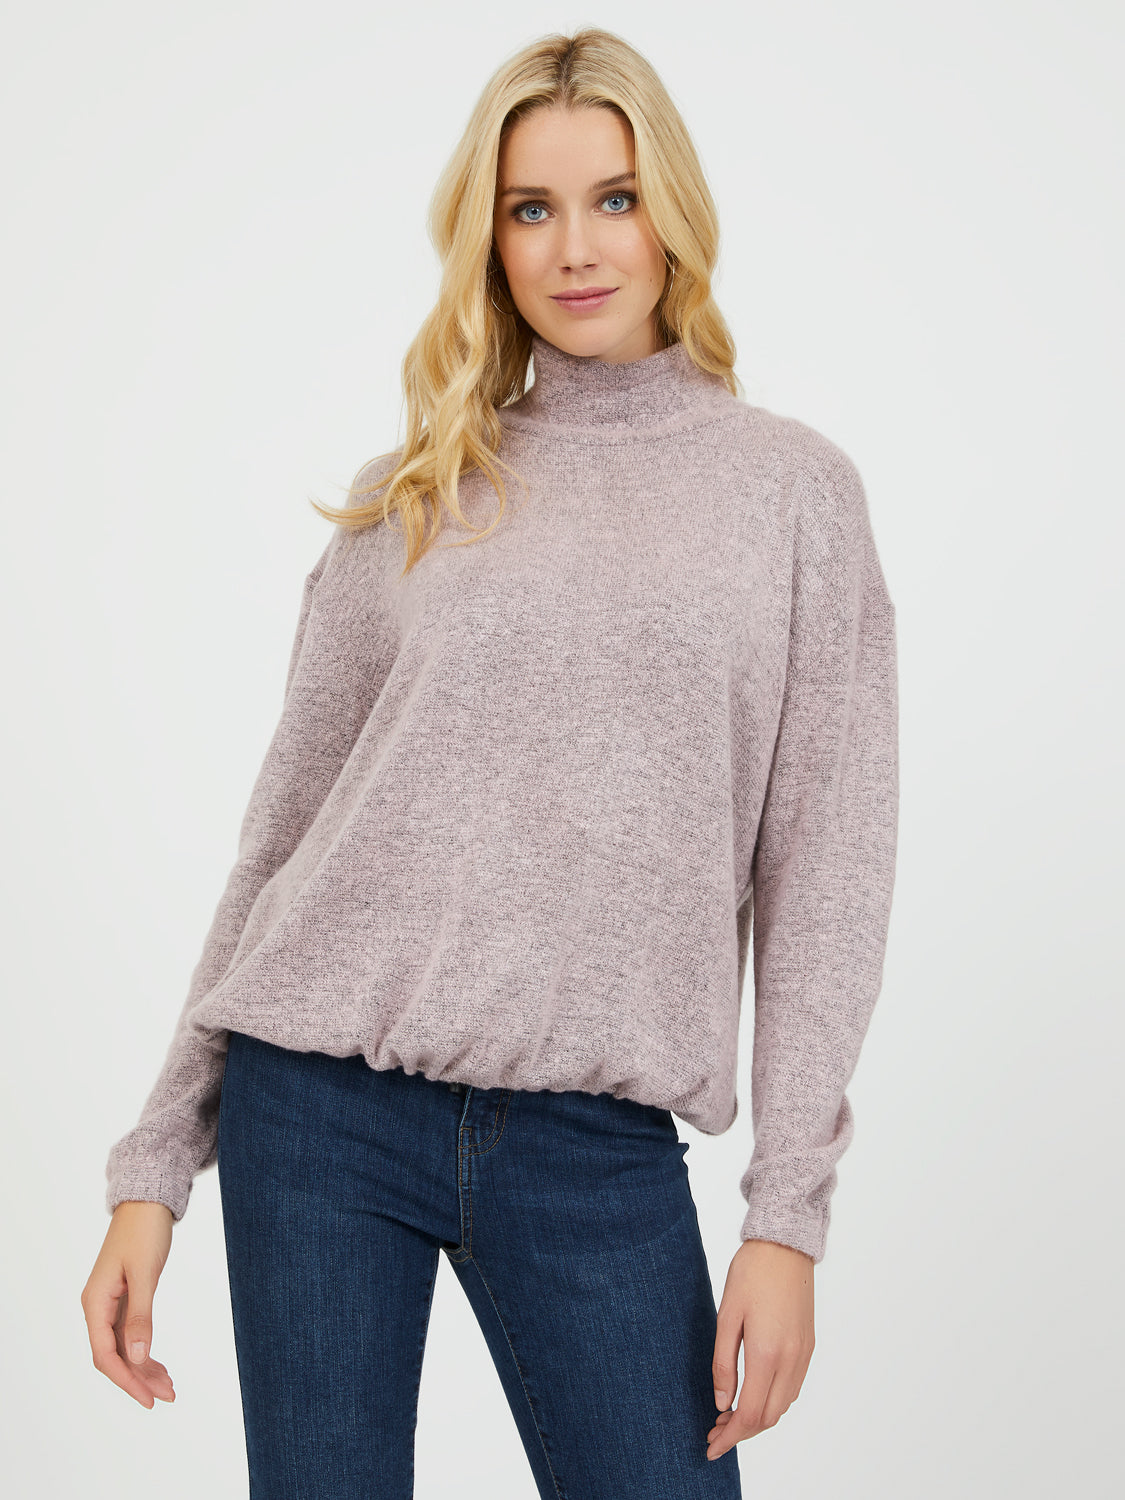 Brushed Mock Neck Sweater Knit Top